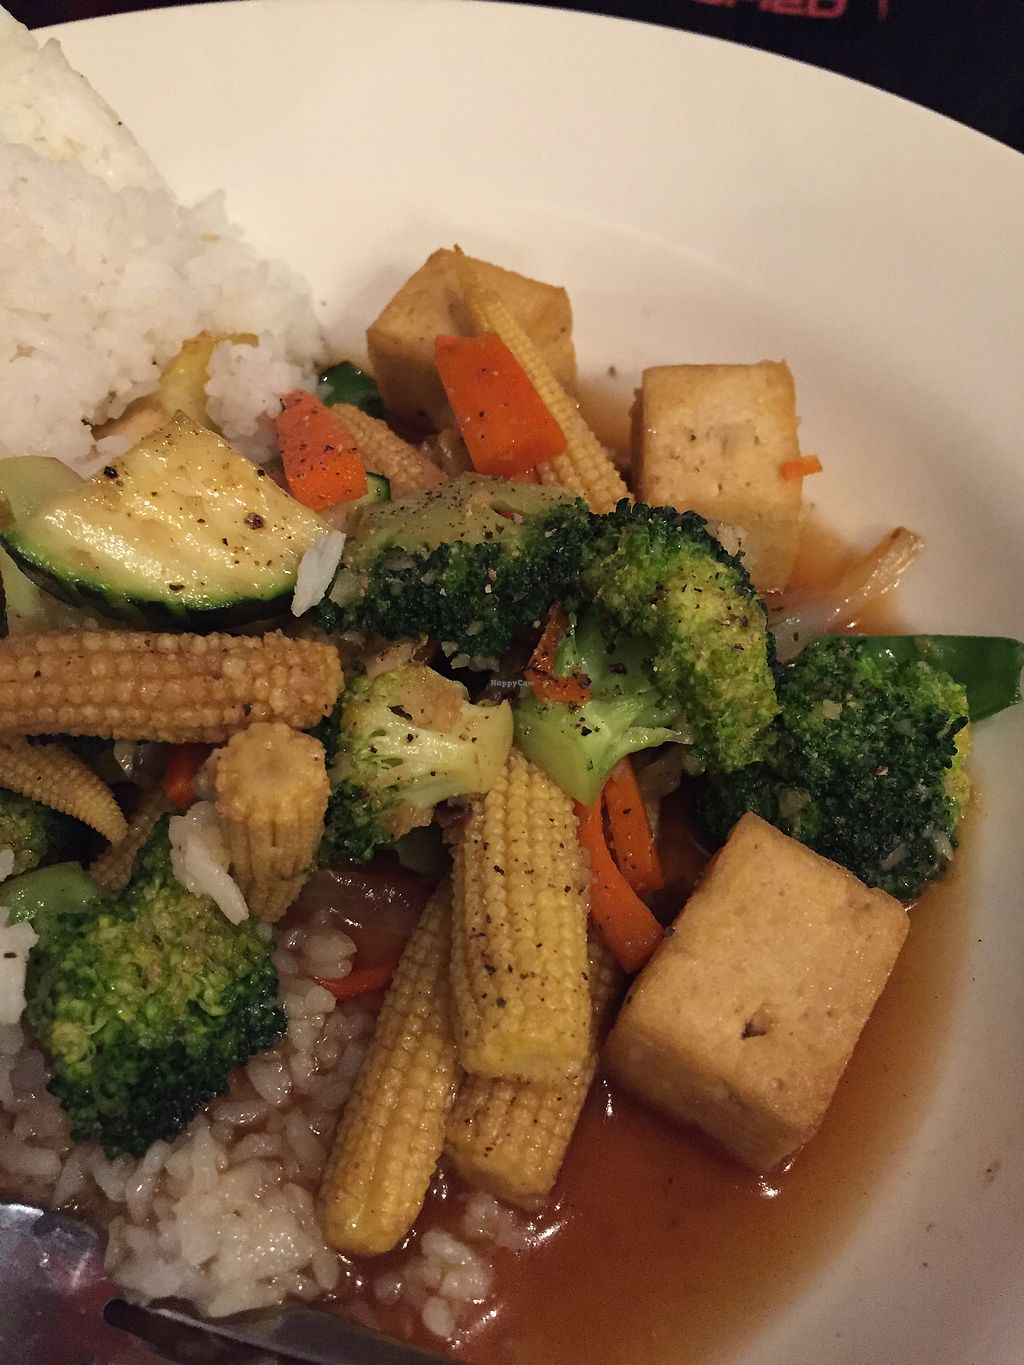 "Photo of Red Spoon  by <a href=""/members/profile/CeciliaM"">CeciliaM</a> <br/>Veganised pepper and garlic Veg and tofu stir fry  <br/> October 18, 2017  - <a href='/contact/abuse/image/43606/316484'>Report</a>"